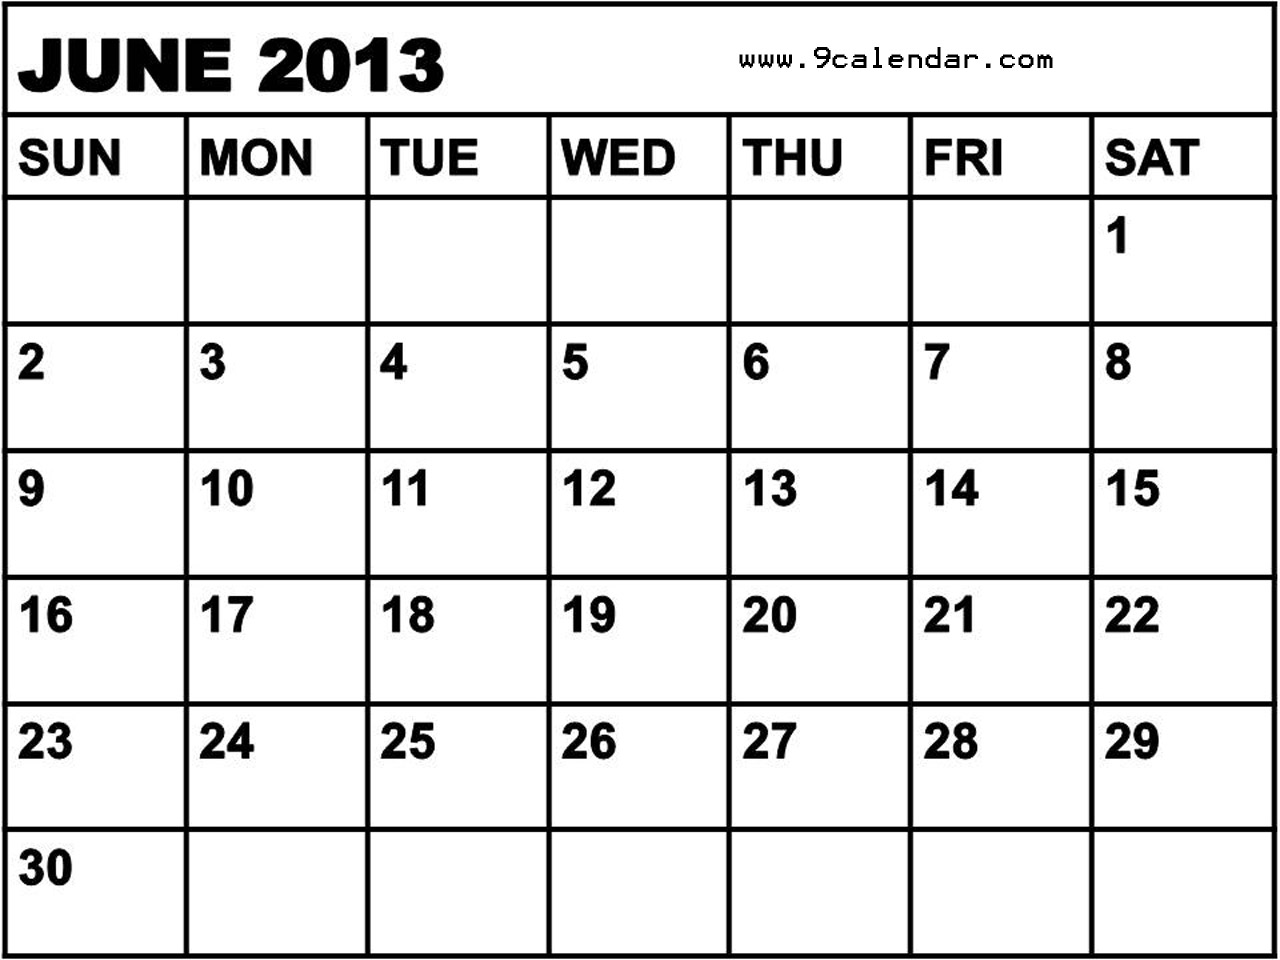 2013 Calendar By Month July The insane month of june!